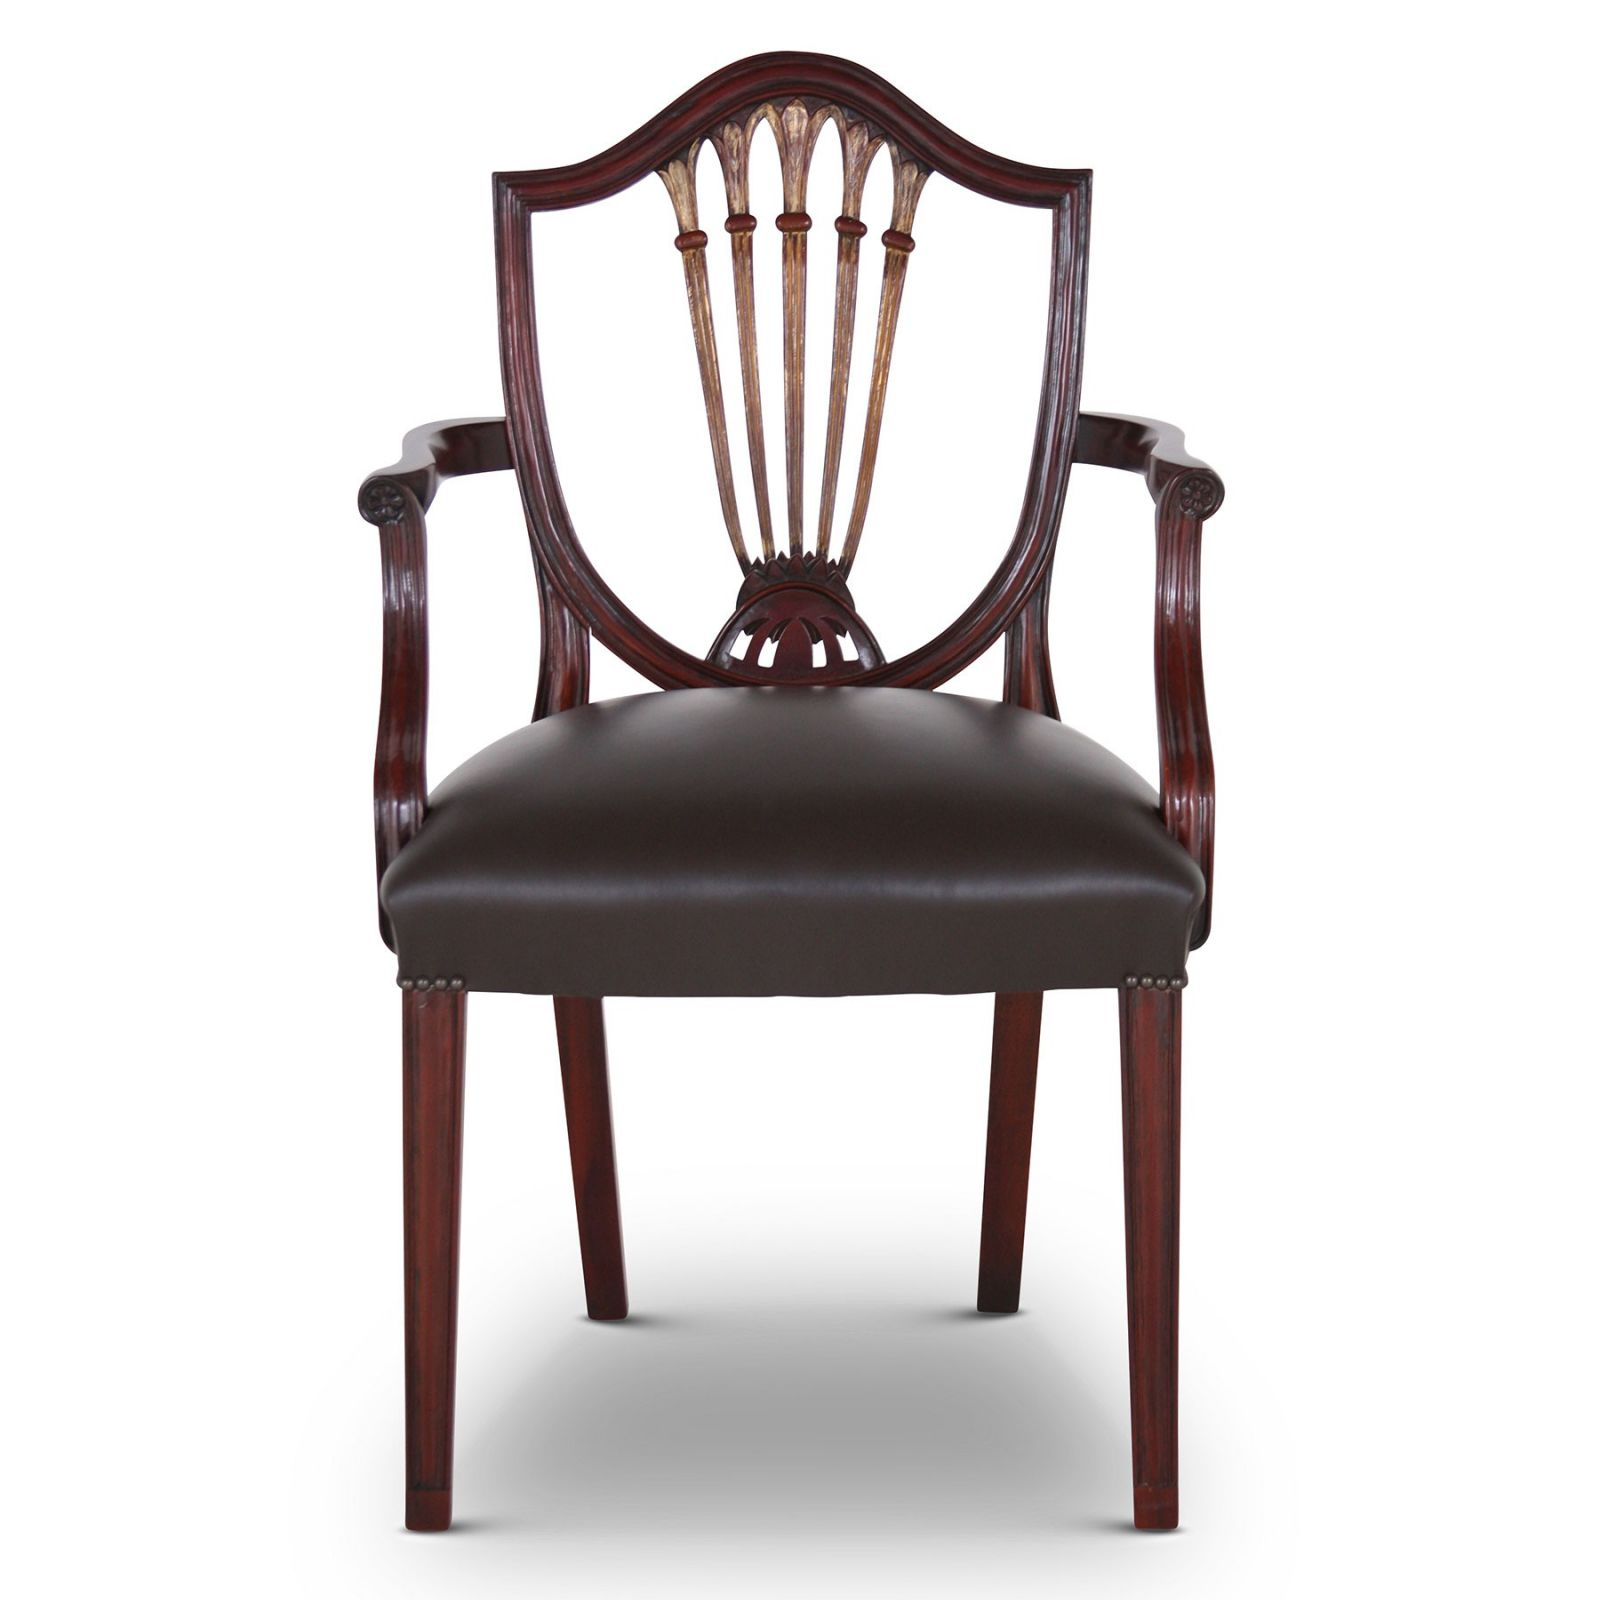 Hepplewhite style mahogany carver dining chair with leather seat